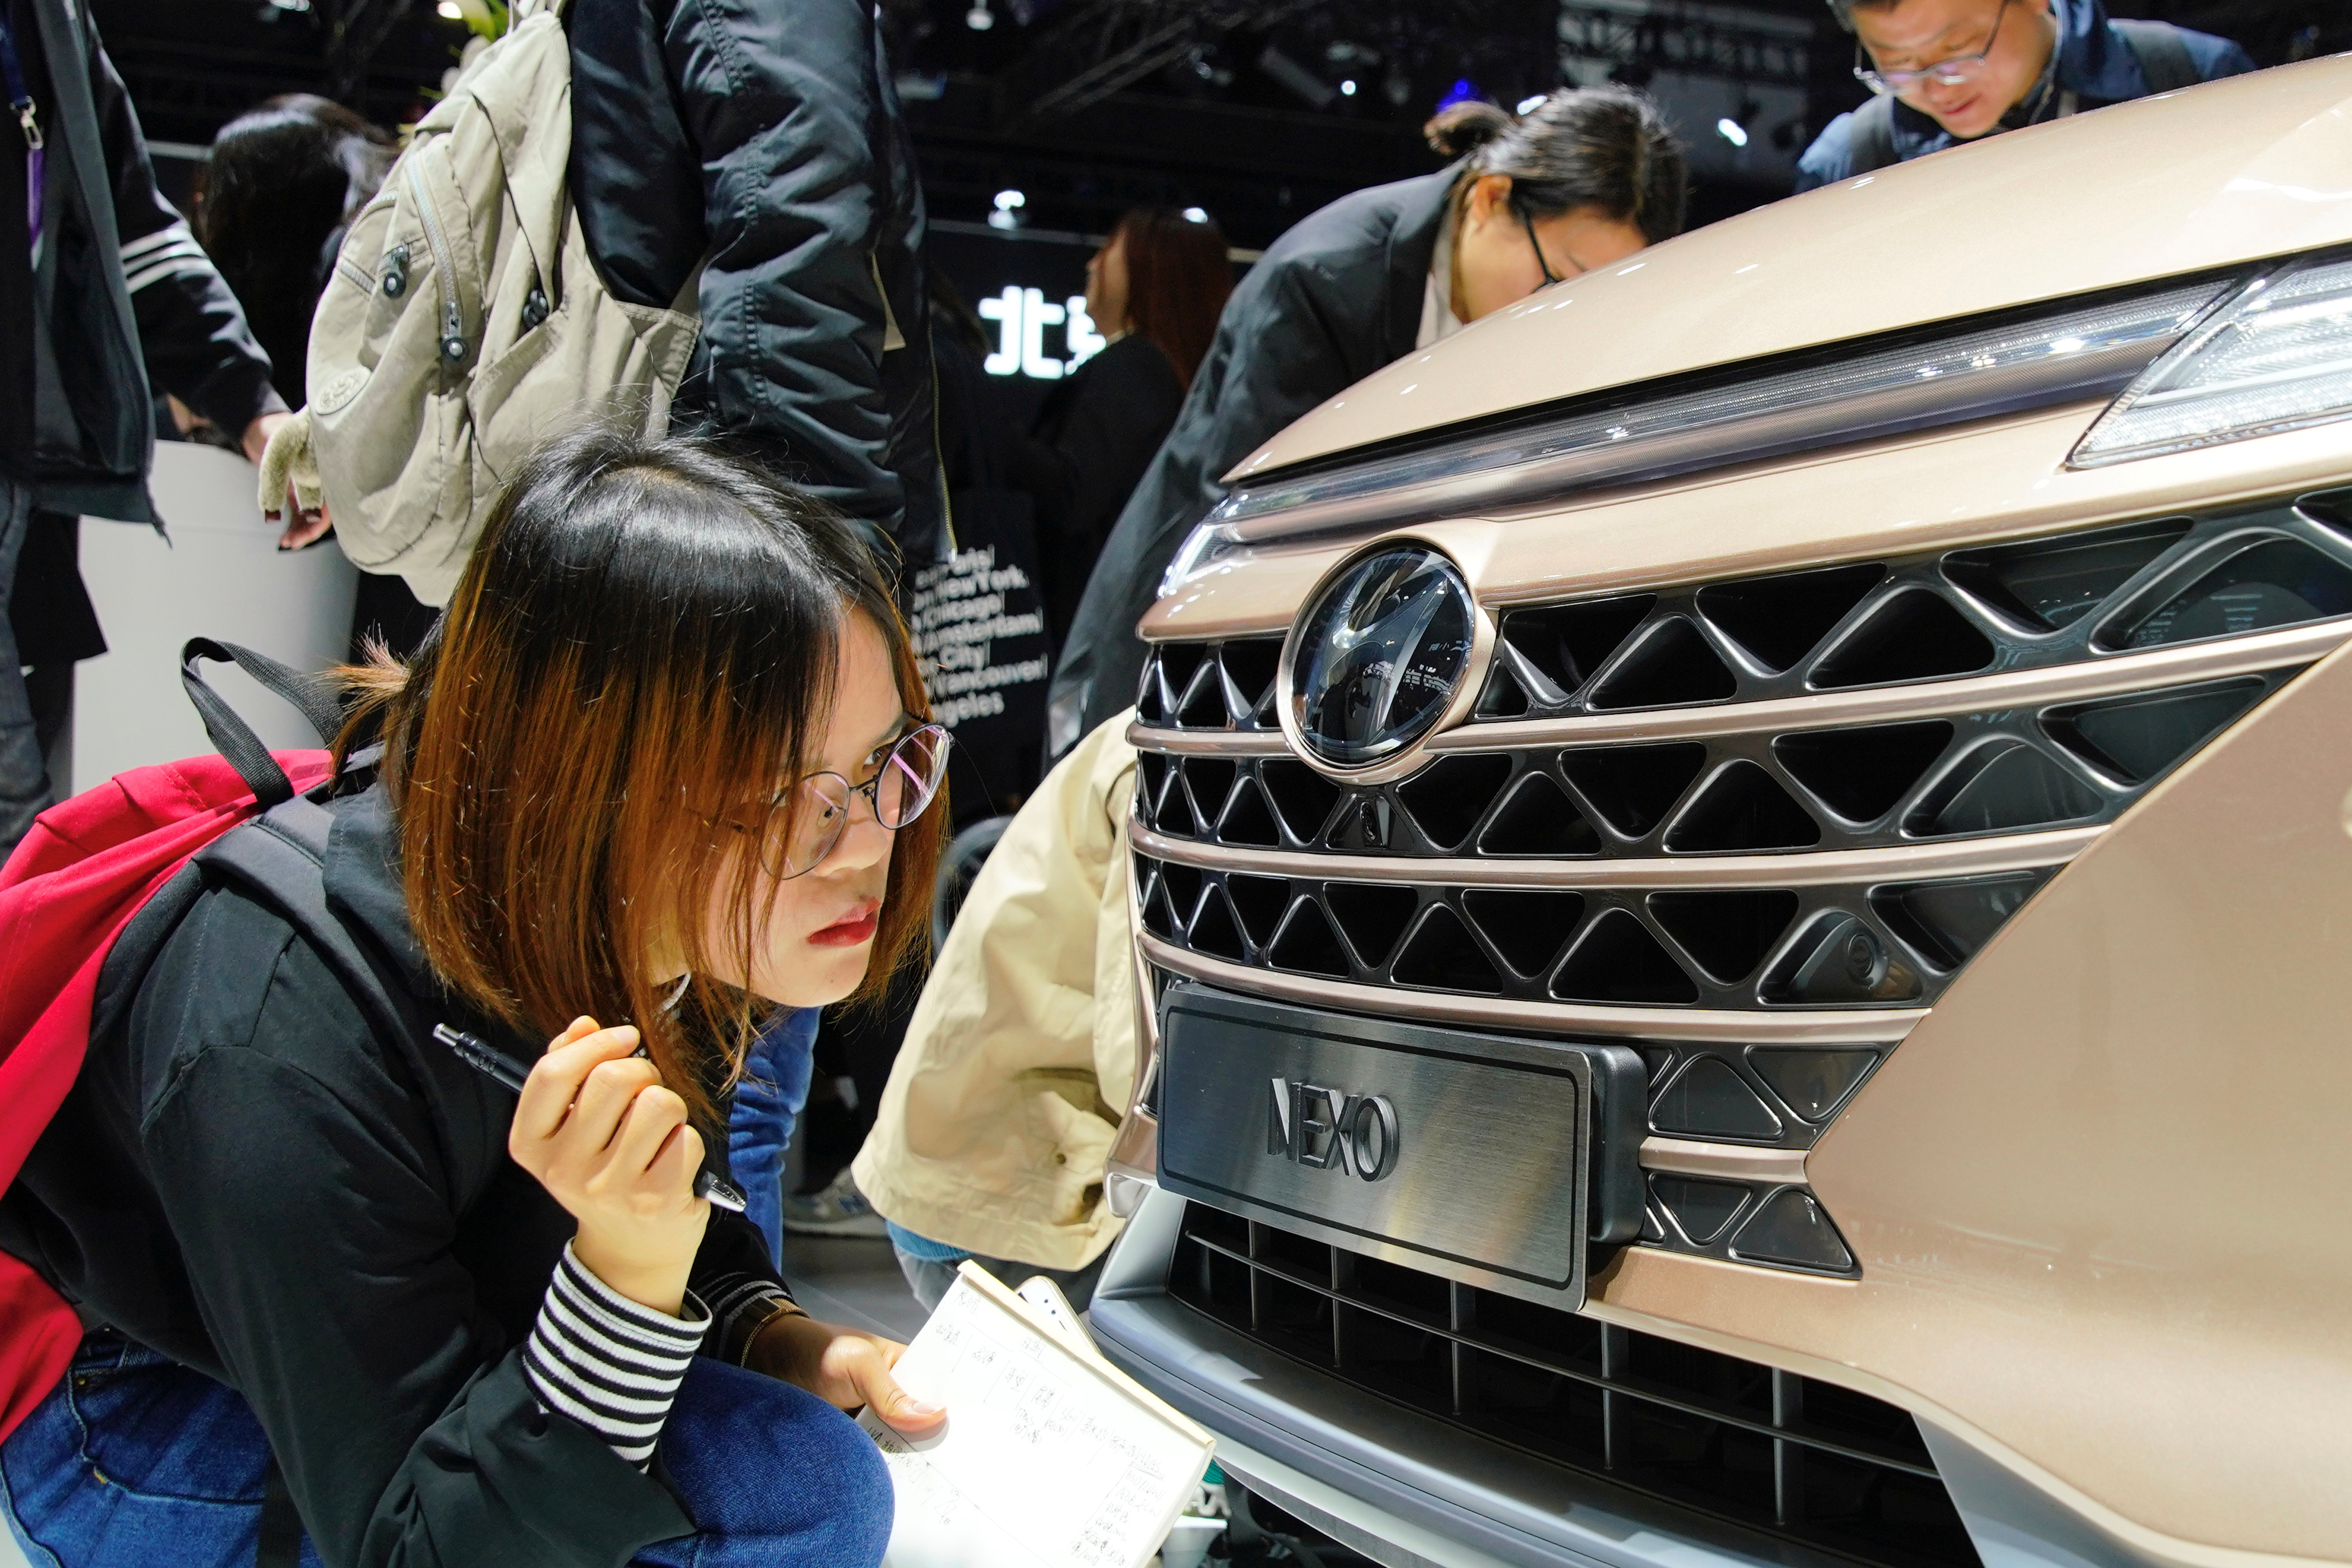 shanghai-auto-show-2019-salon-de-l-automobile-chine